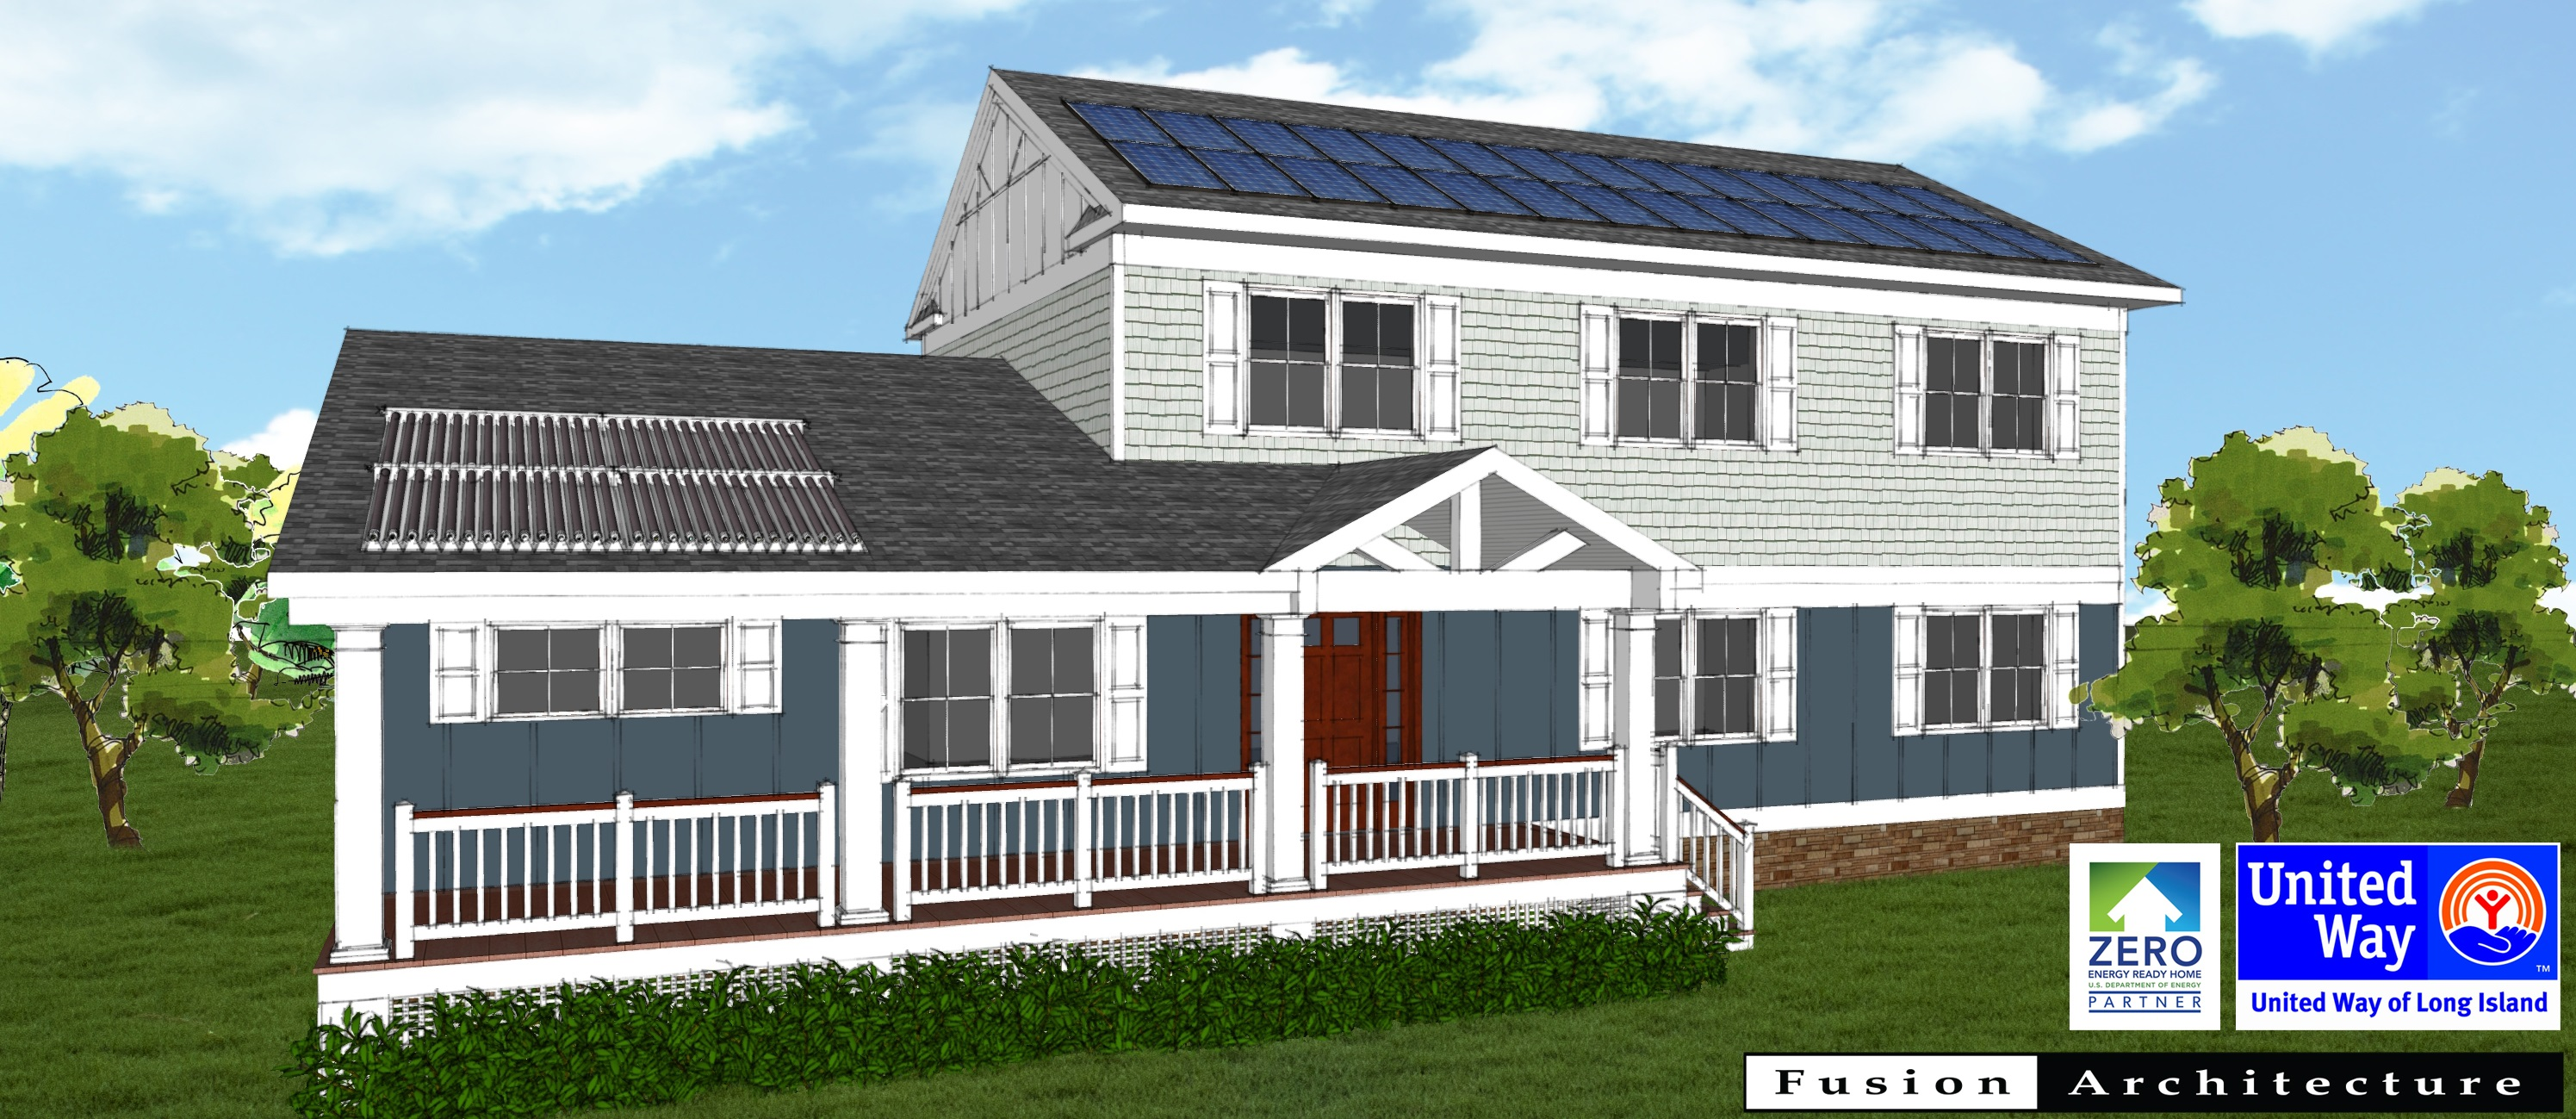 Governor cuomo announces first of its kind energy efficient home built